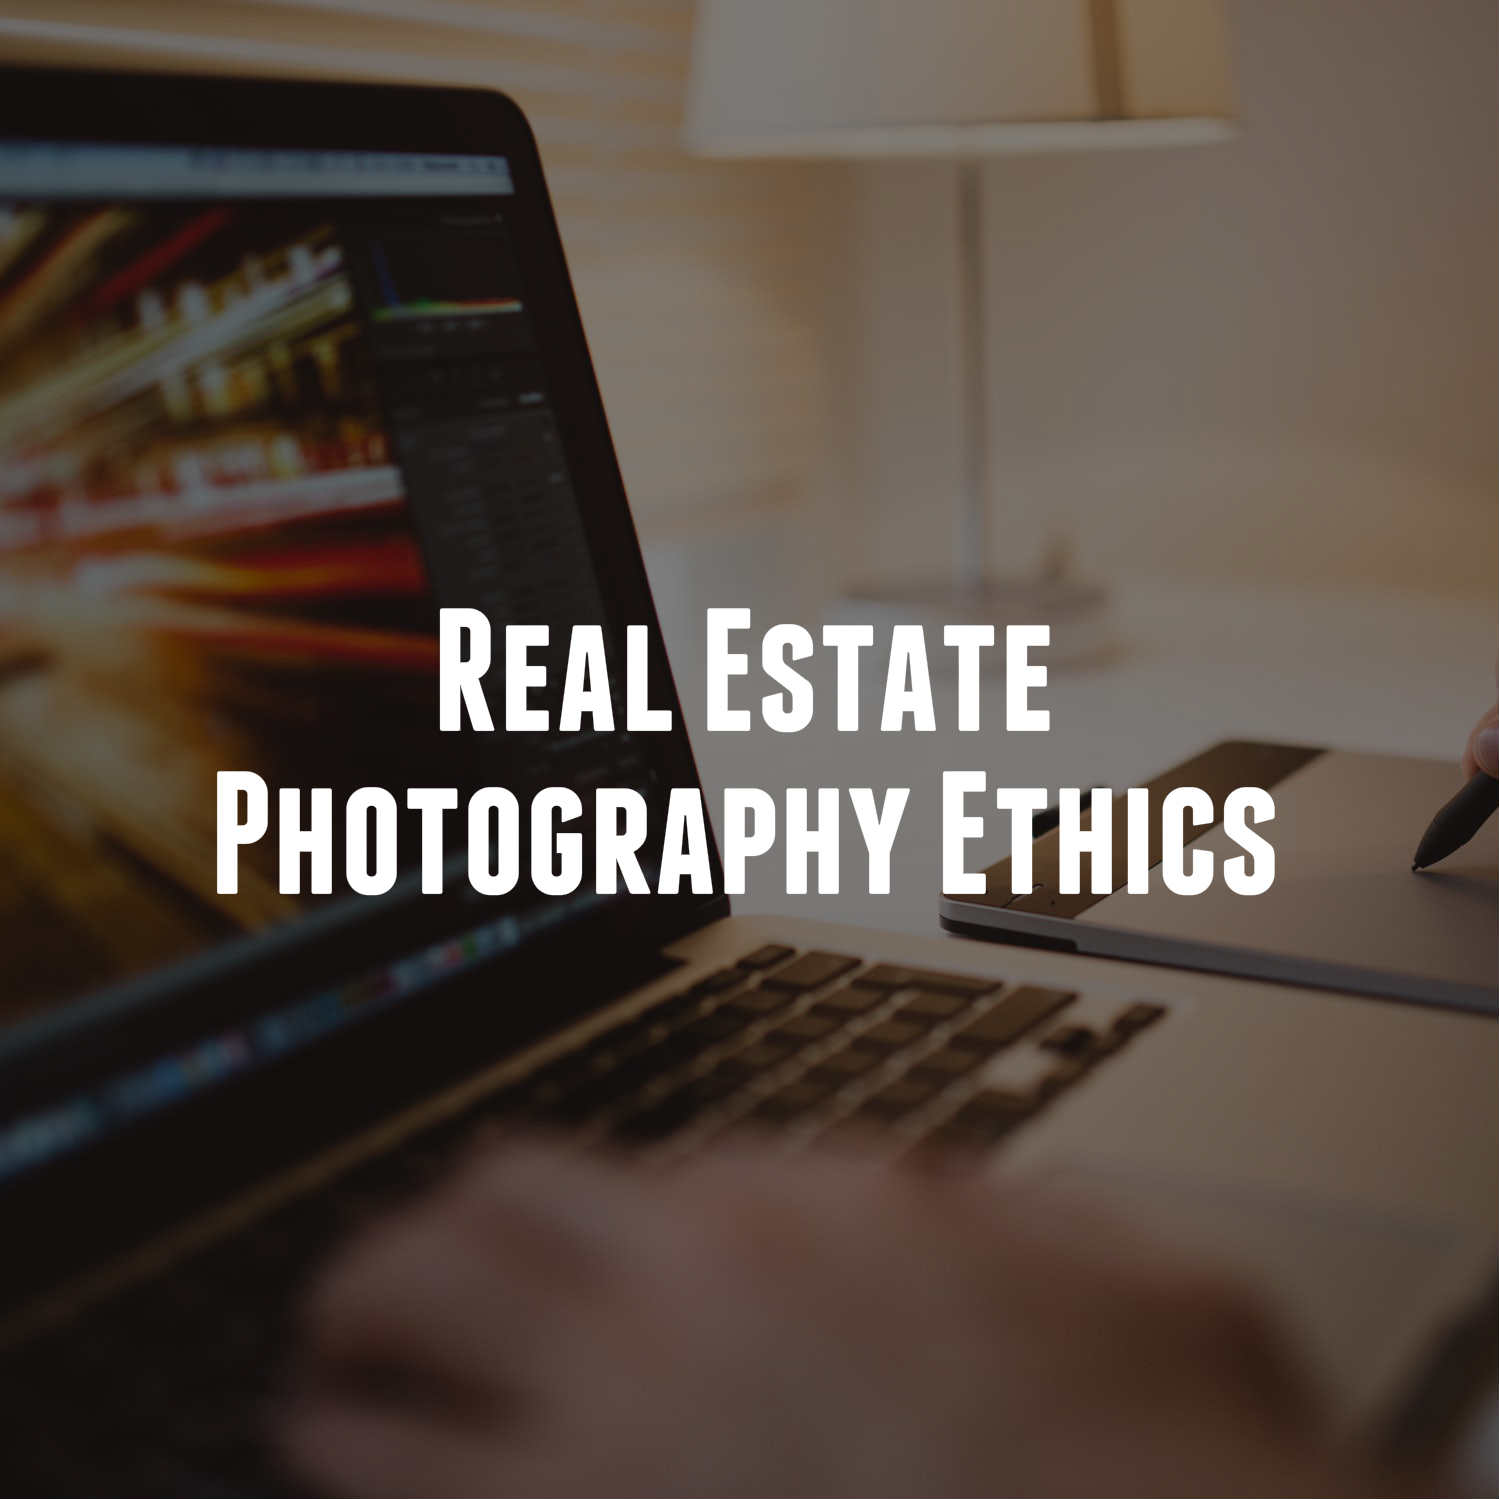 Real Estate Photography Ethics